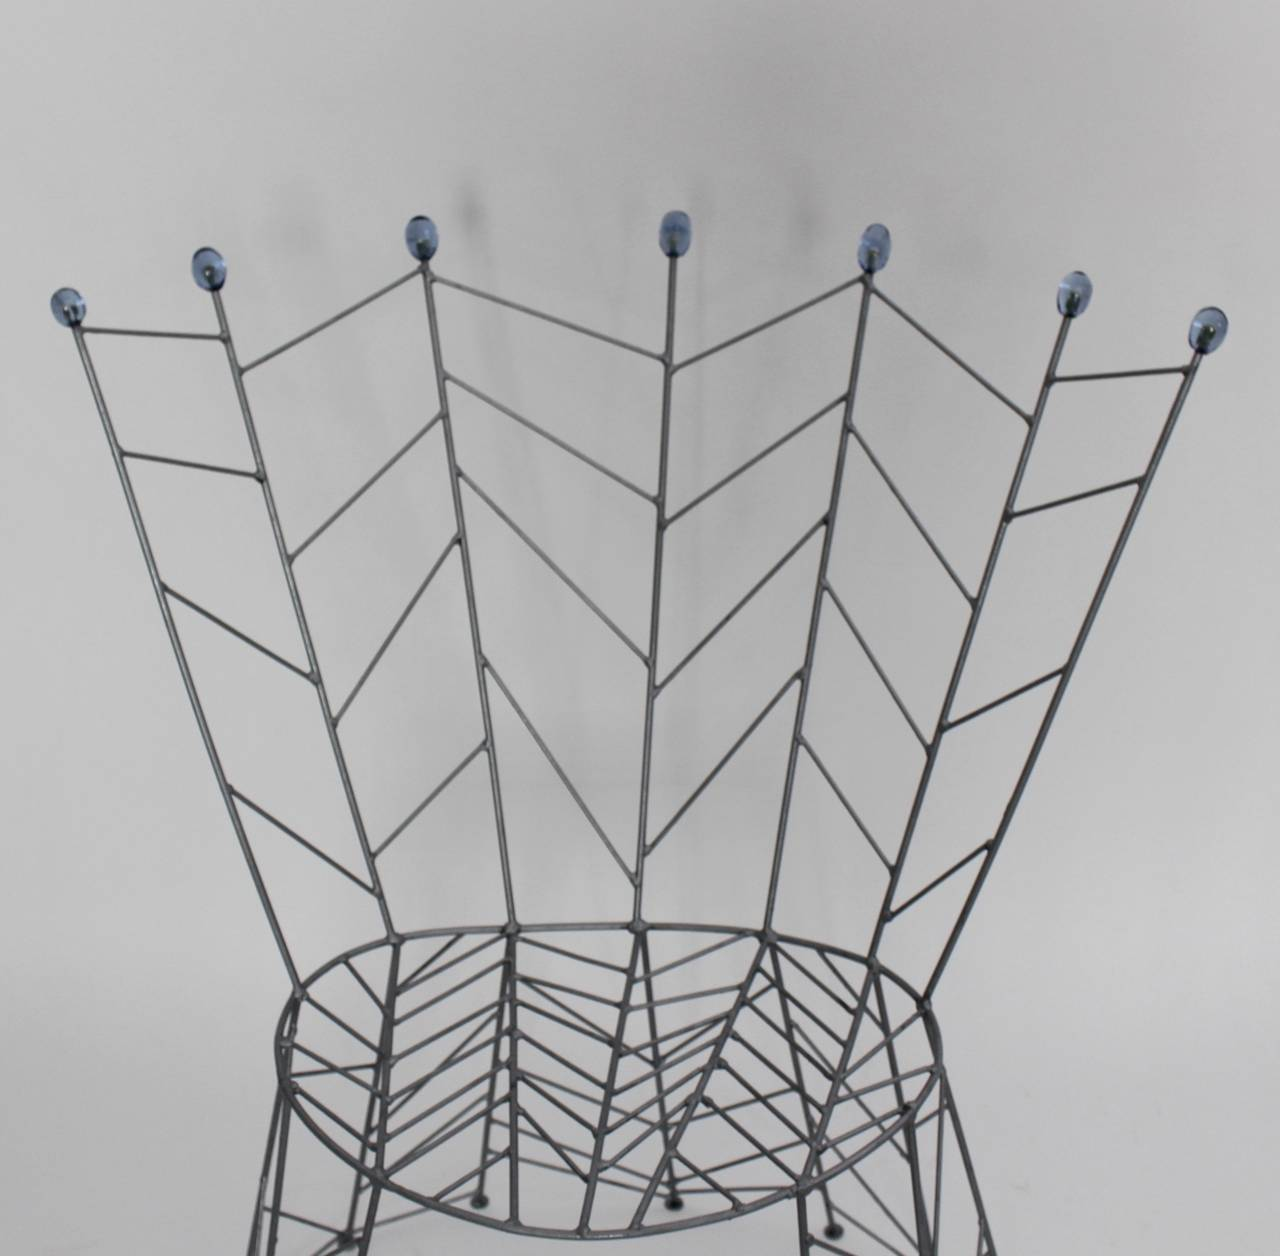 Modernist Metal Vintage Chairs Pupeny by Bohuslav Horak 1988 Czech Republic For Sale 3